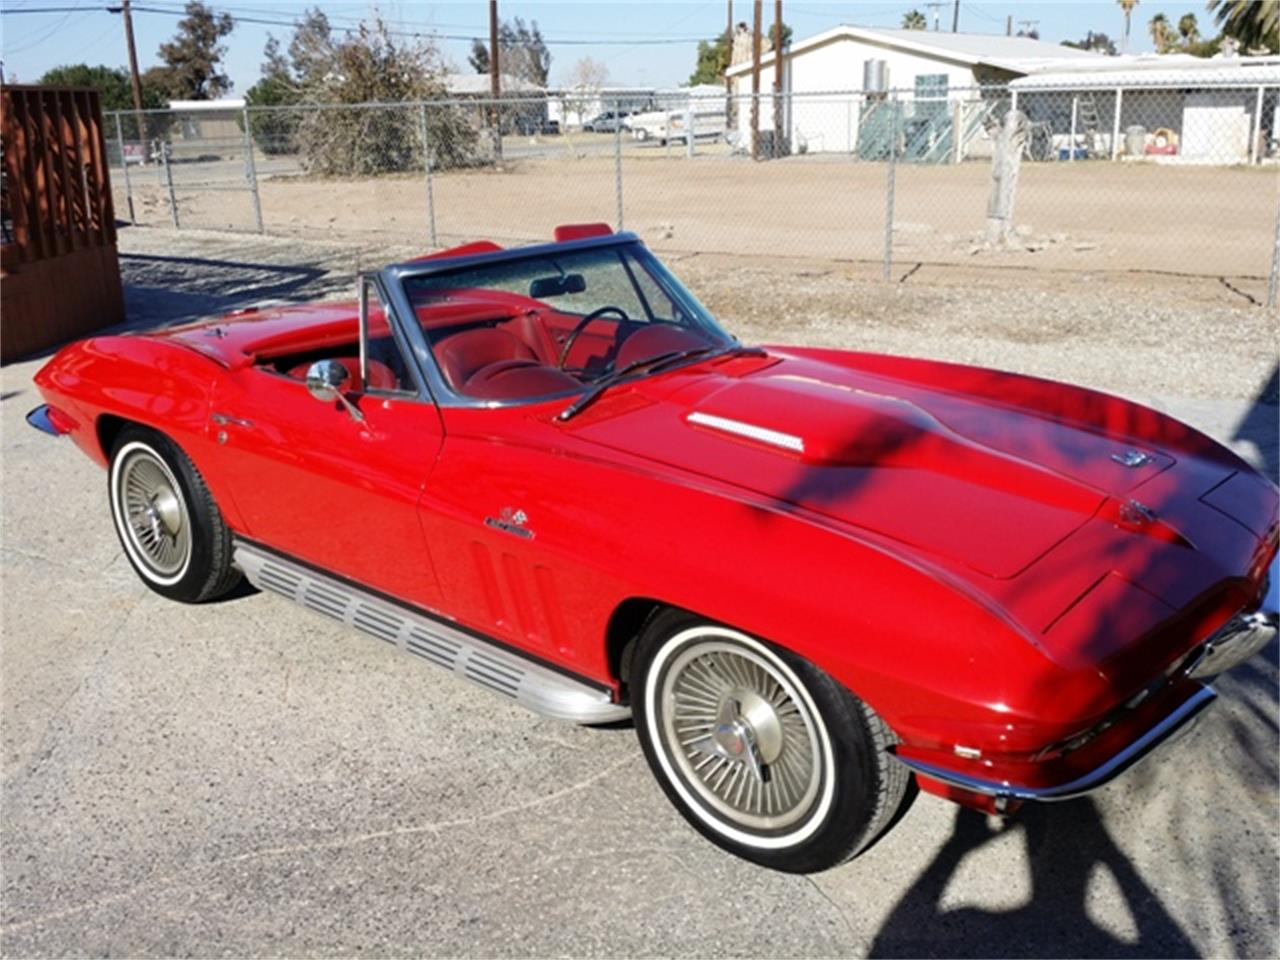 1966 Chevrolet Corvette (CC-1273994) for sale in Palm Springs, California